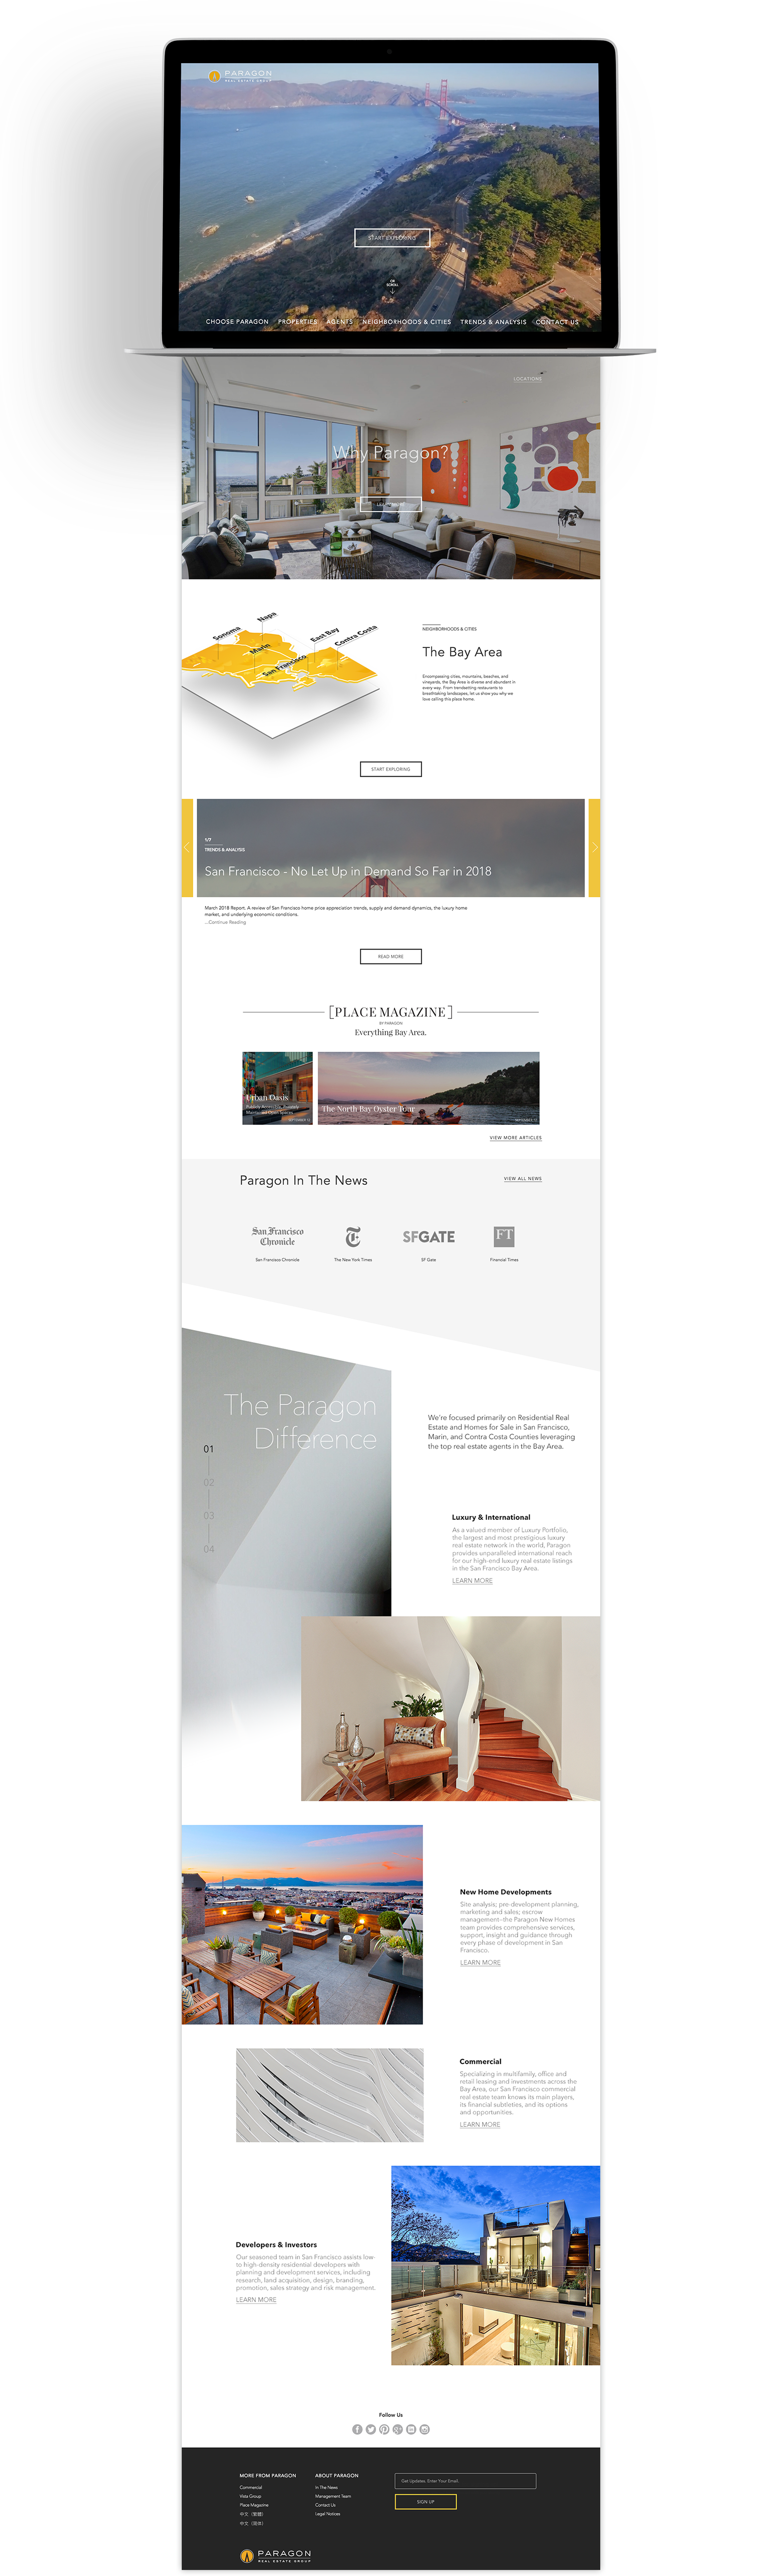 Realtor & Real Estate Web Design | HIGH SEAS